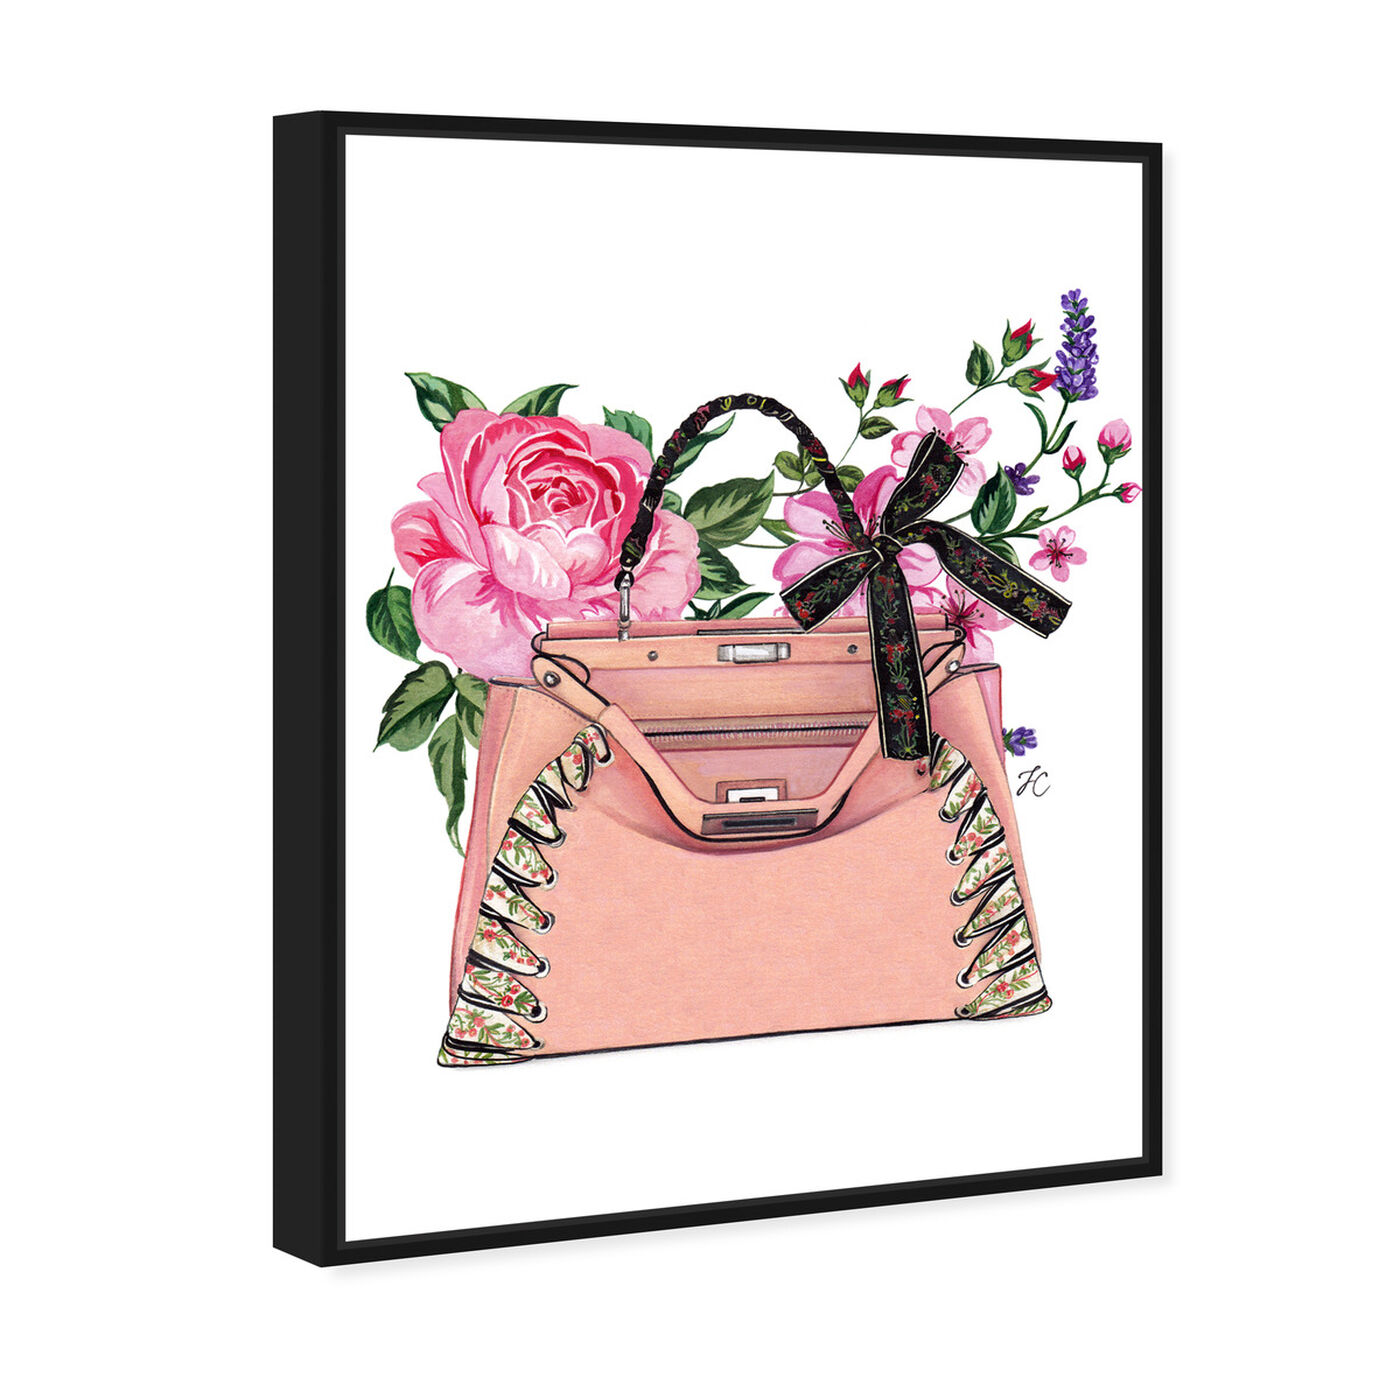 Angled view of Doll Memories - Pink roses featuring fashion and glam and handbags art.